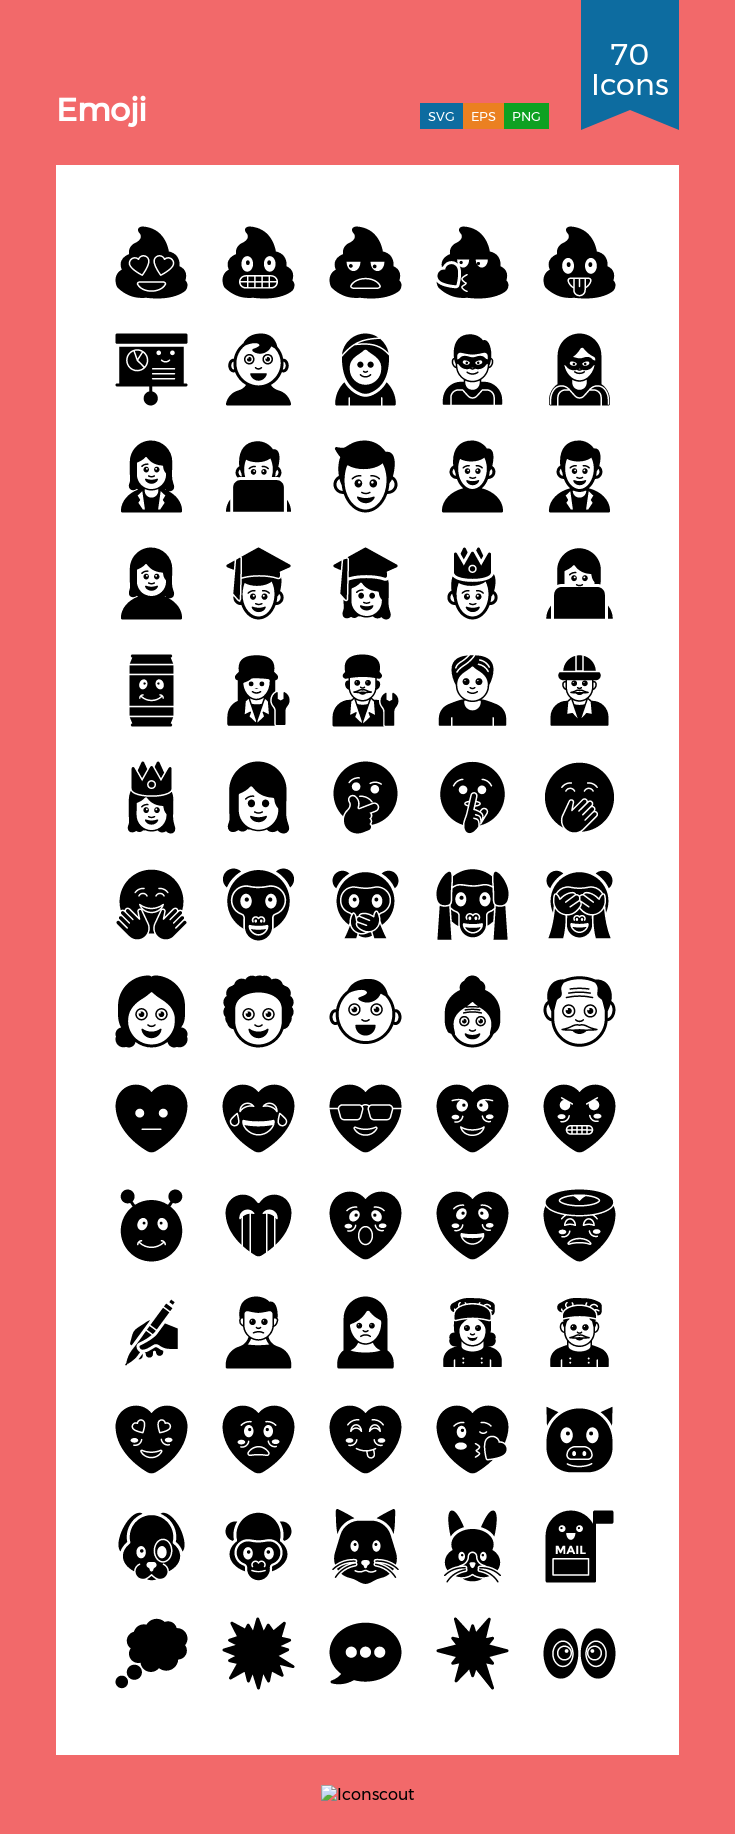 Download Emoji Icon Pack Available In Svg Png Eps Ai Icon Fonts Icon Pack Icon Emoji Face Icon